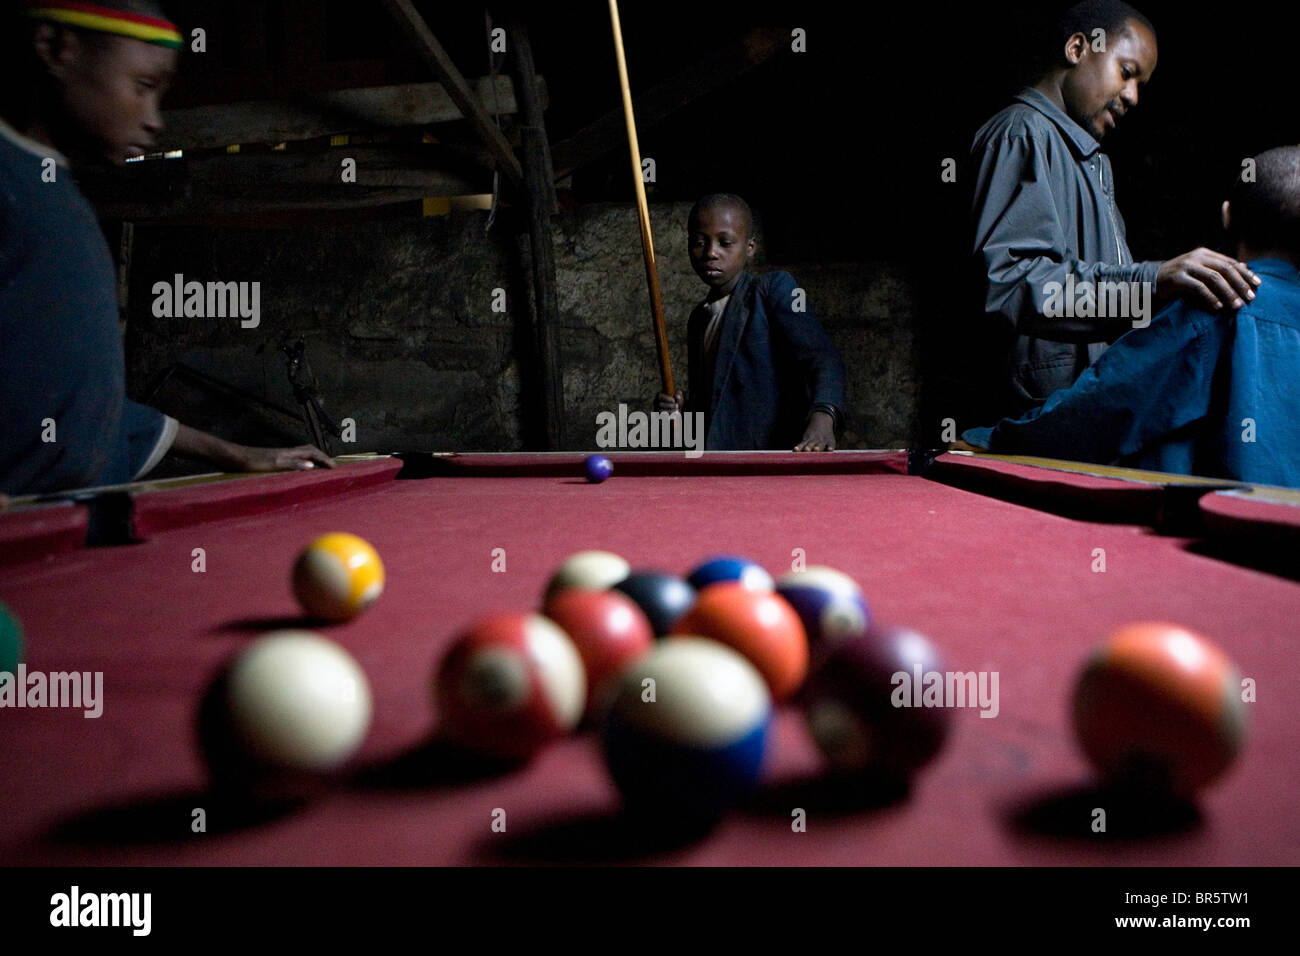 Tanzanian Street kids, play a round of pool at a local bar in Moshi. - Stock Image